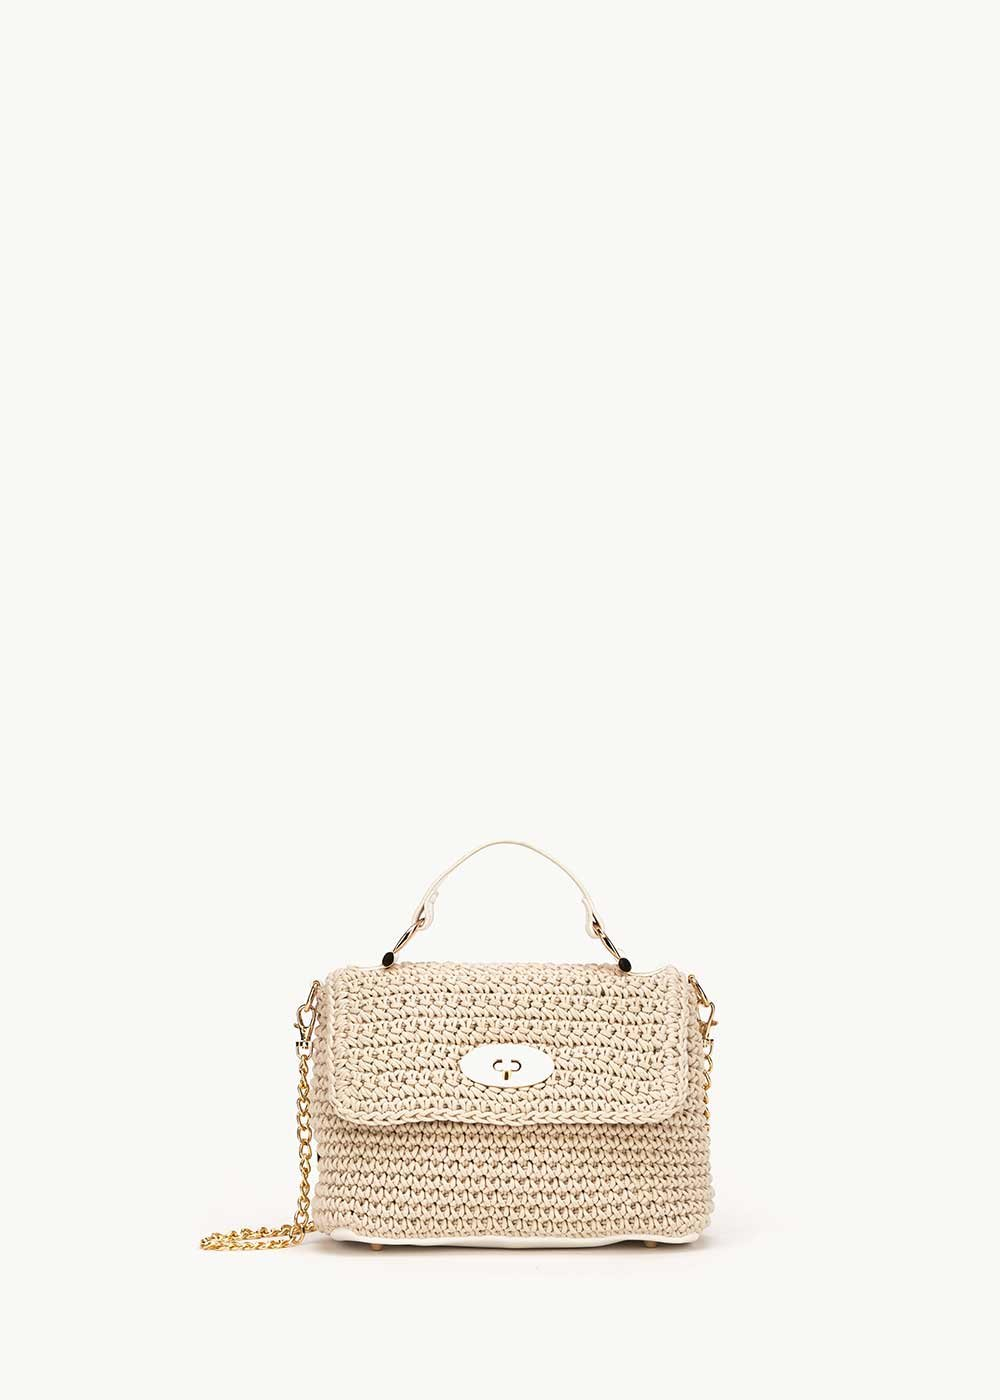 Barrie clutch bag with rope making - Light Beige / Cocco - Woman